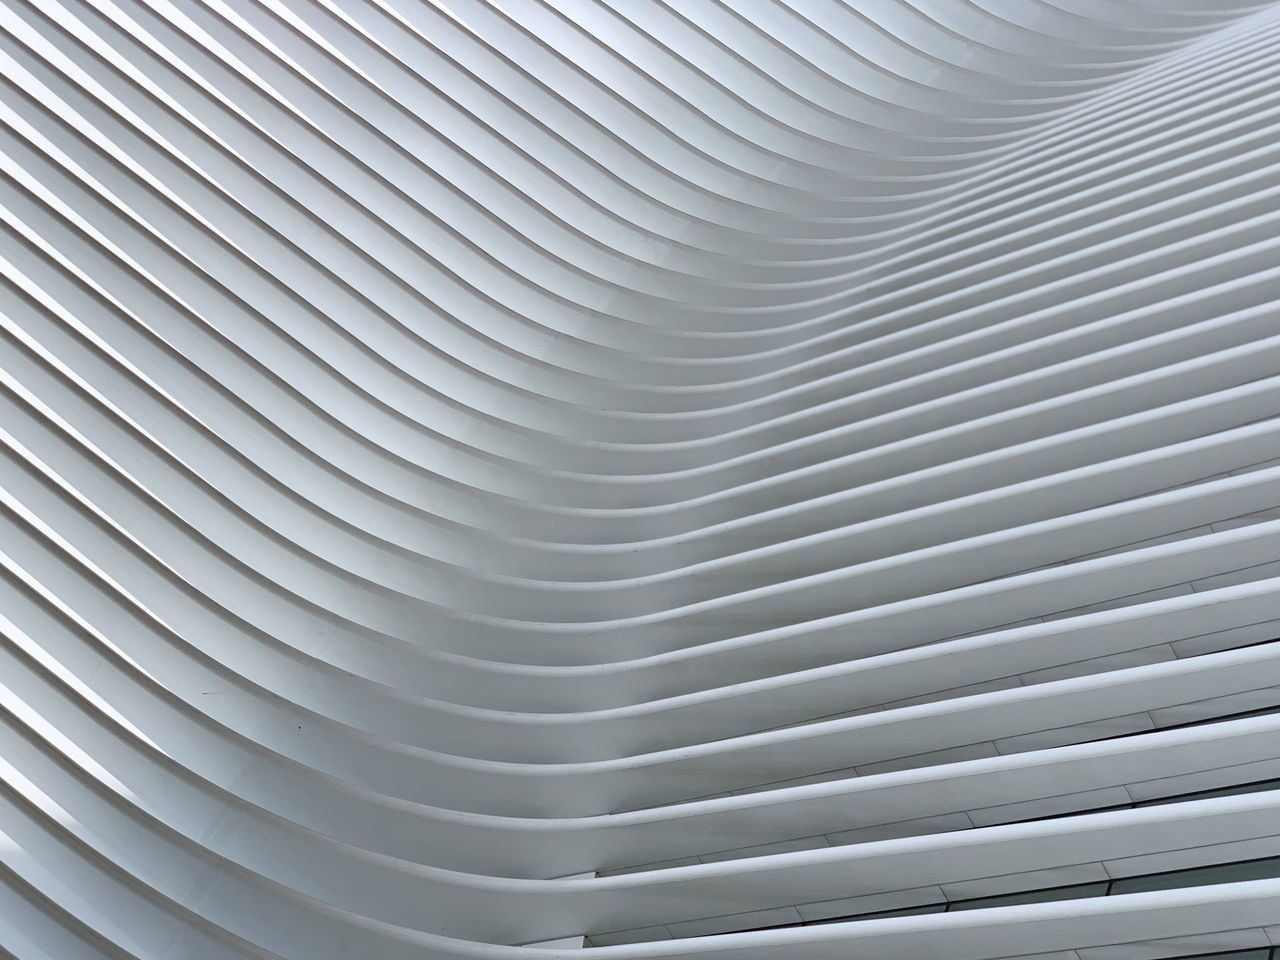 pattern, backgrounds, full frame, metal, silver colored, no people, close-up, indoors, modern, textured, architecture, ceiling, repetition, white color, abstract, gray, in a row, curve, built structure, day, steel, alloy